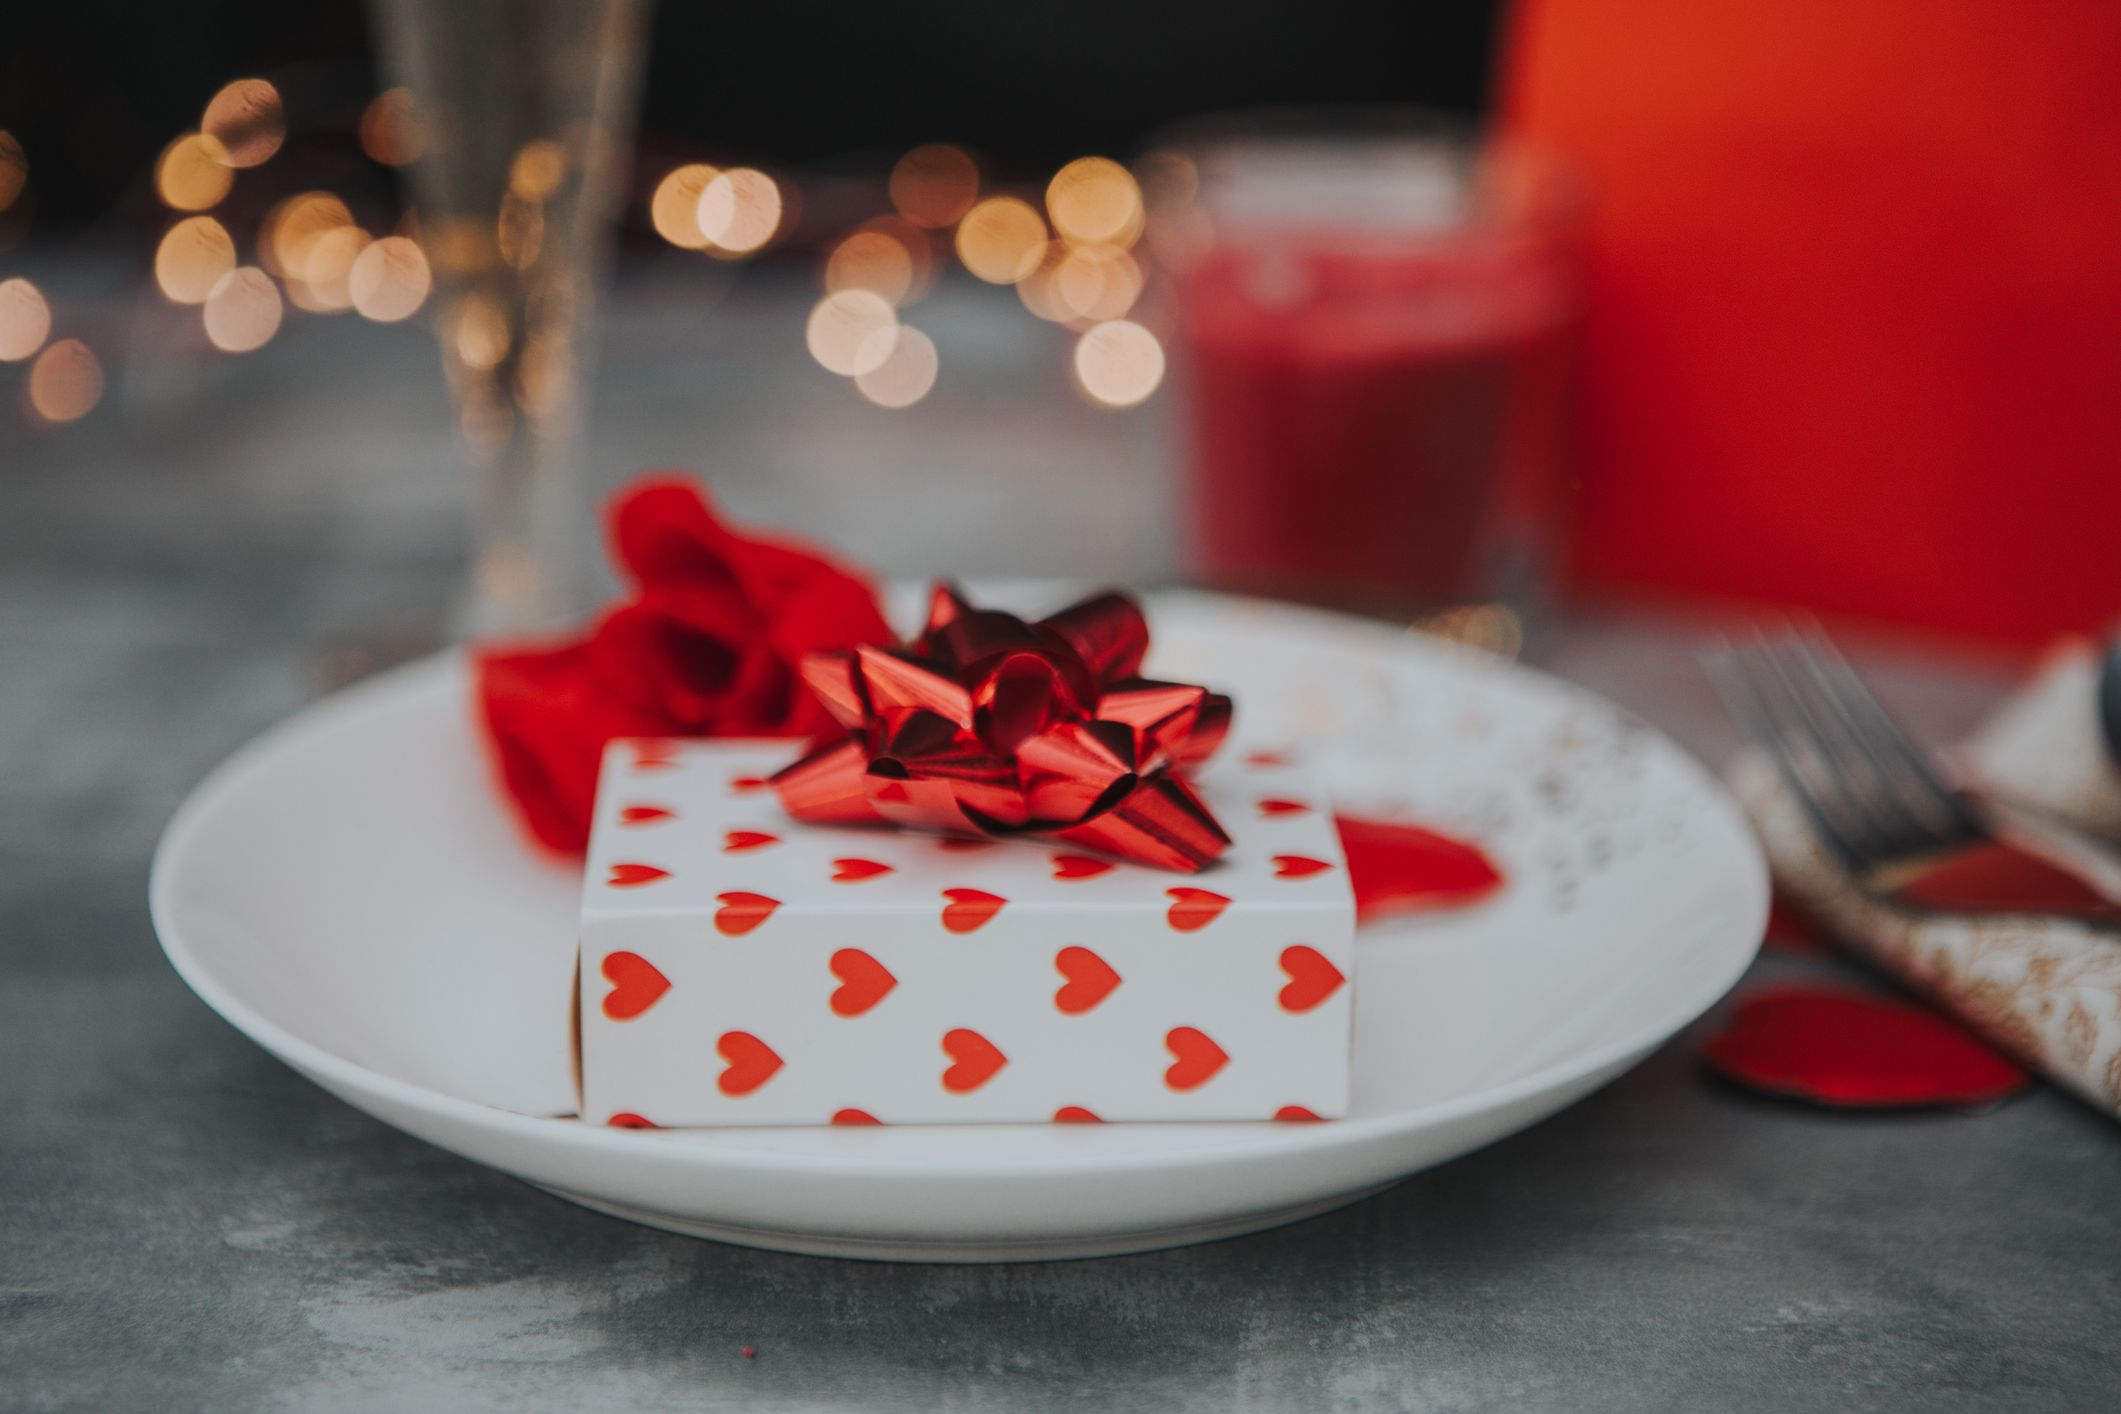 21 Creative Valentine's Day Date Ideas That Go Way Beyond Dinner and a Movie